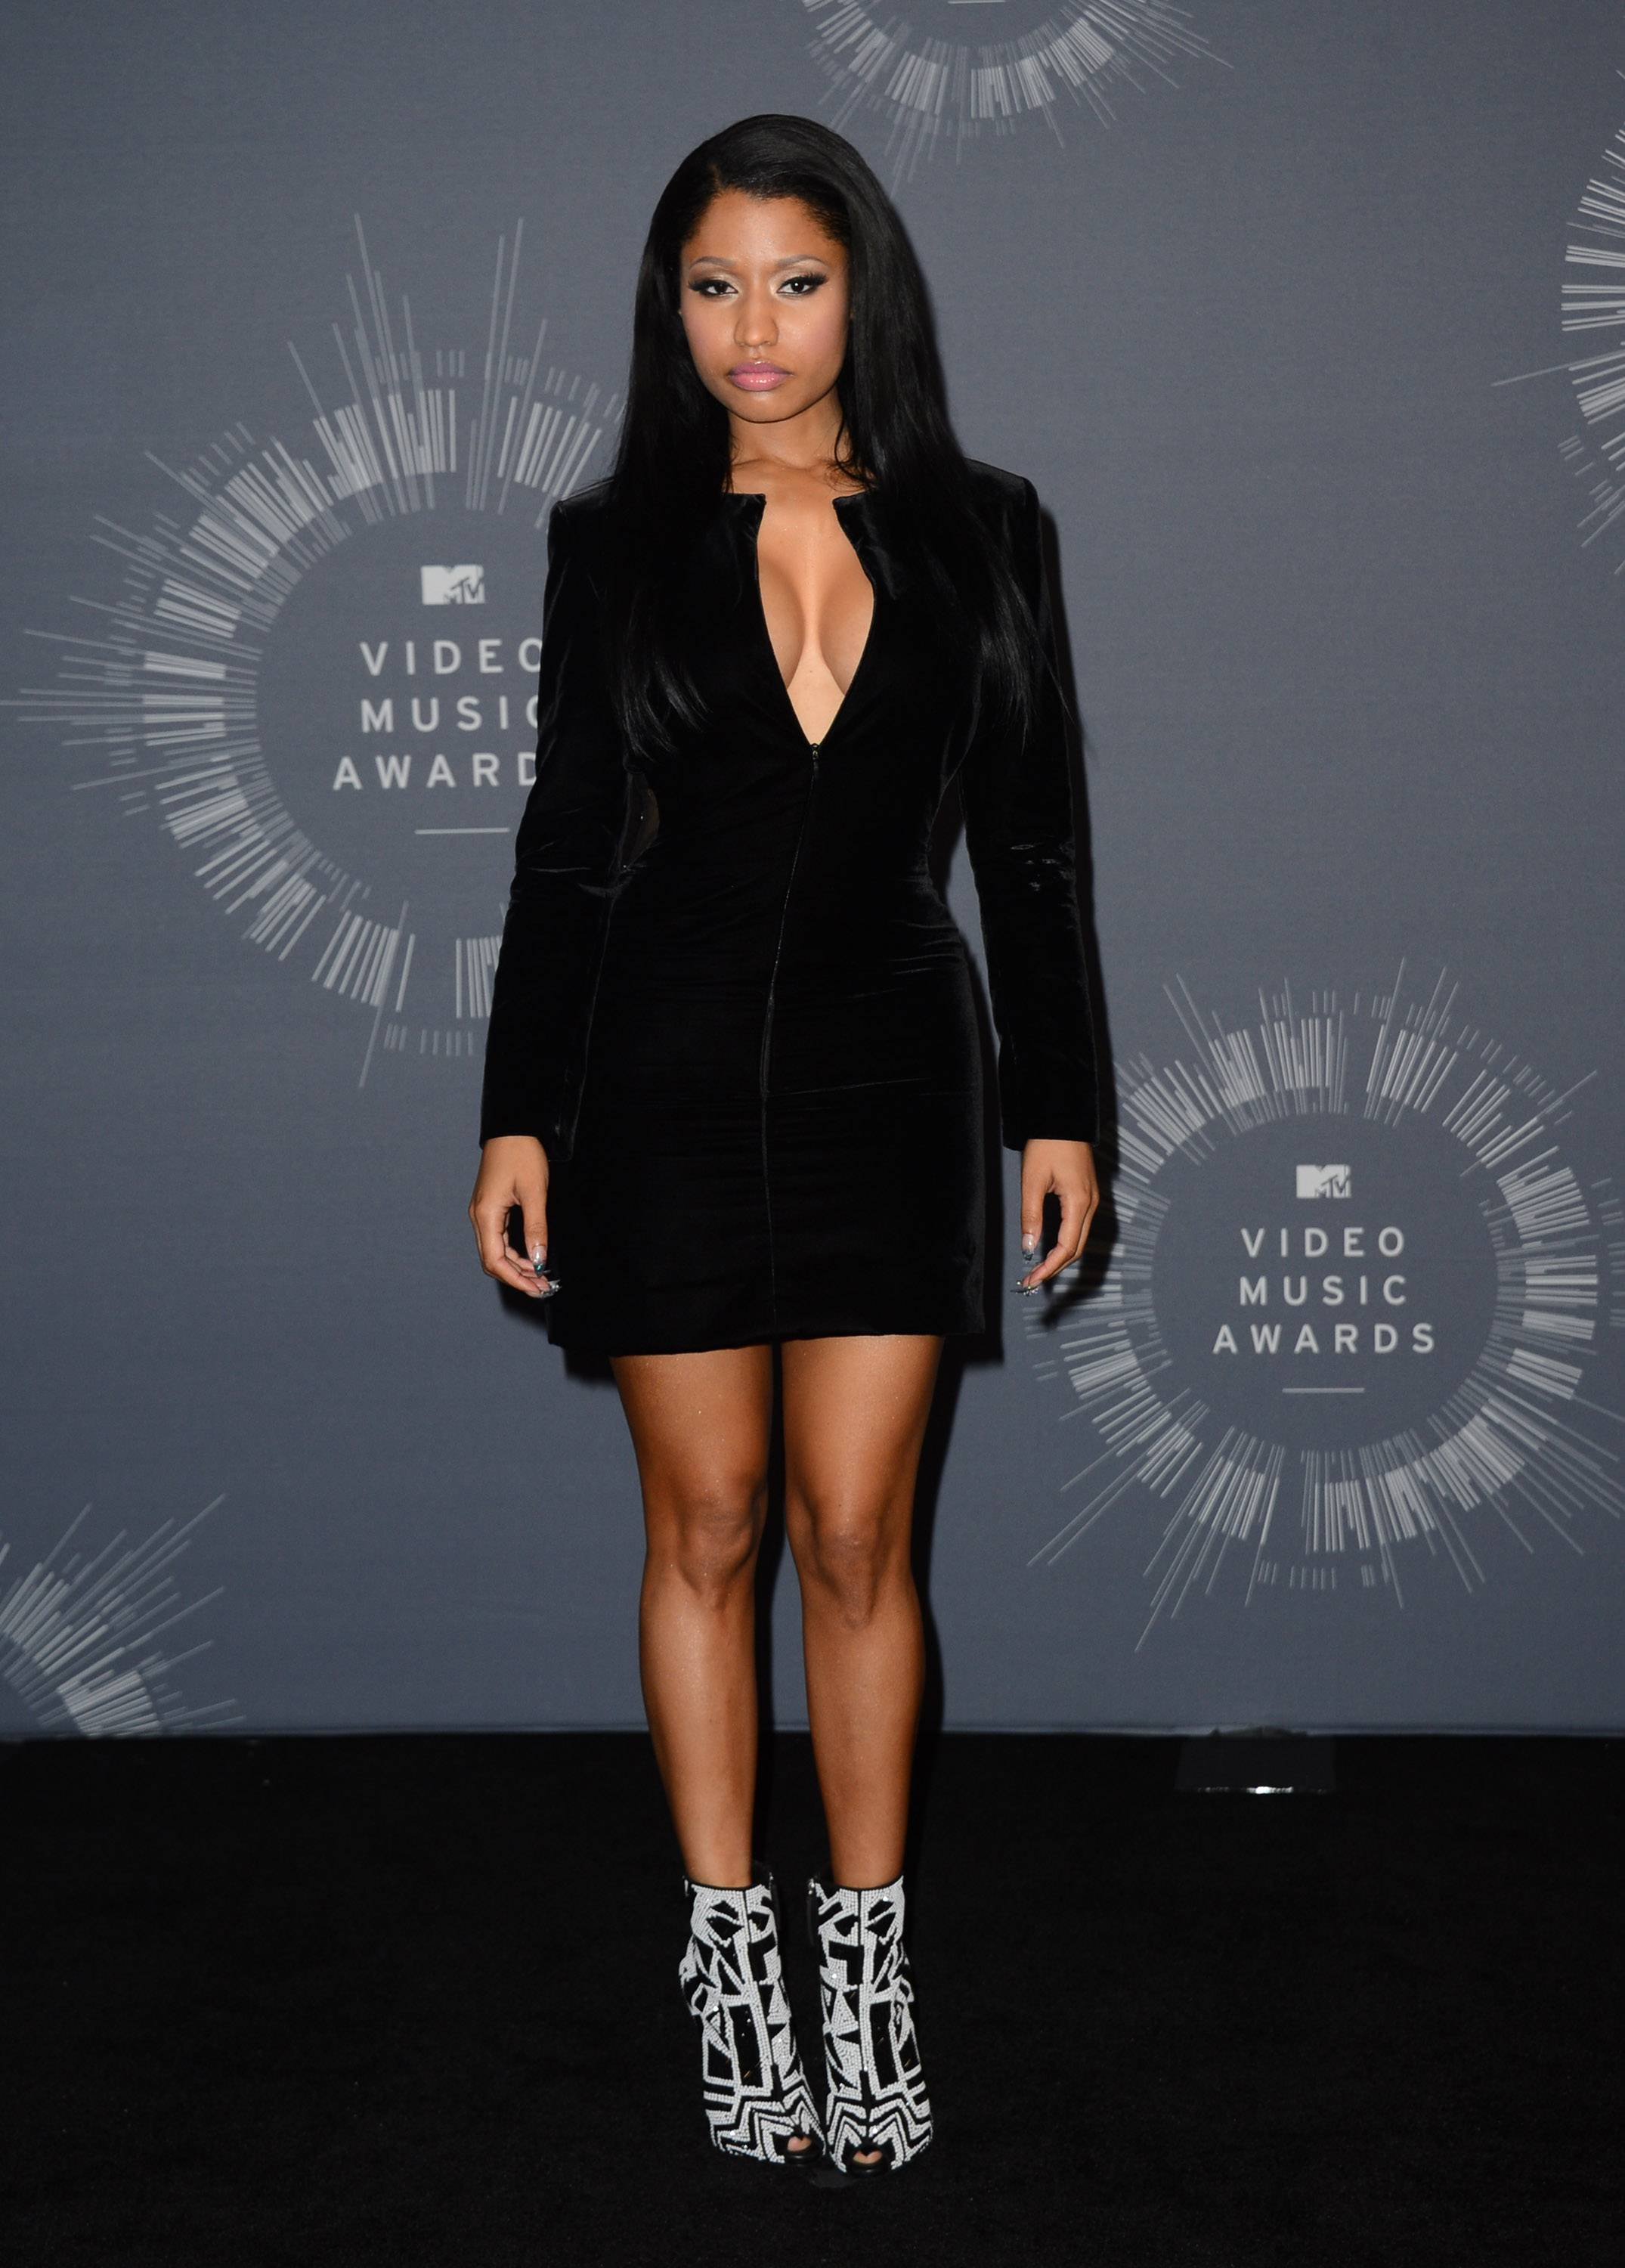 BEST: Nicki Minaj manages to redeem herself in this little black dress that fits her to a T and even offers a bit of pop with her graphic print booties.